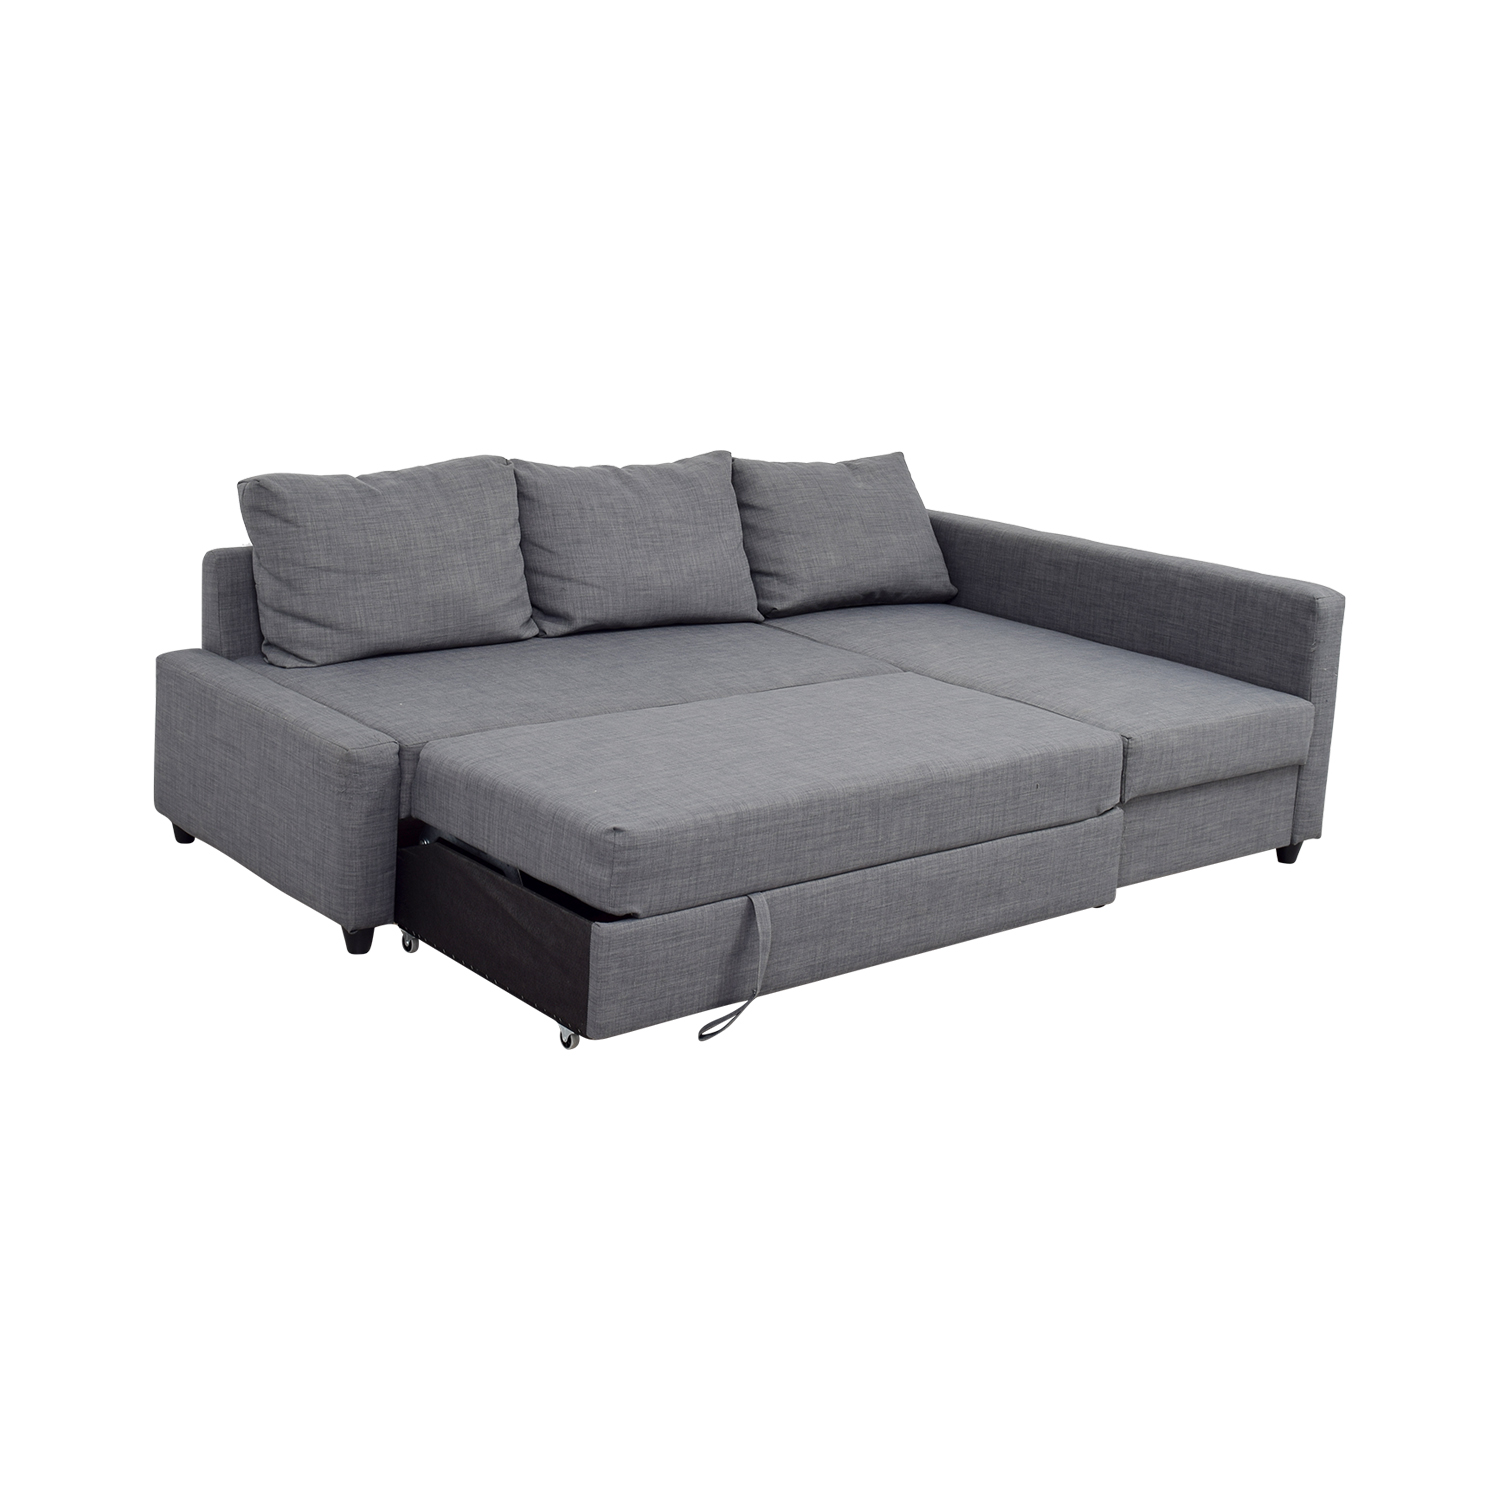 41 off ikea ikea grey sleeper chaise sectional sofas for Table chaise ikea